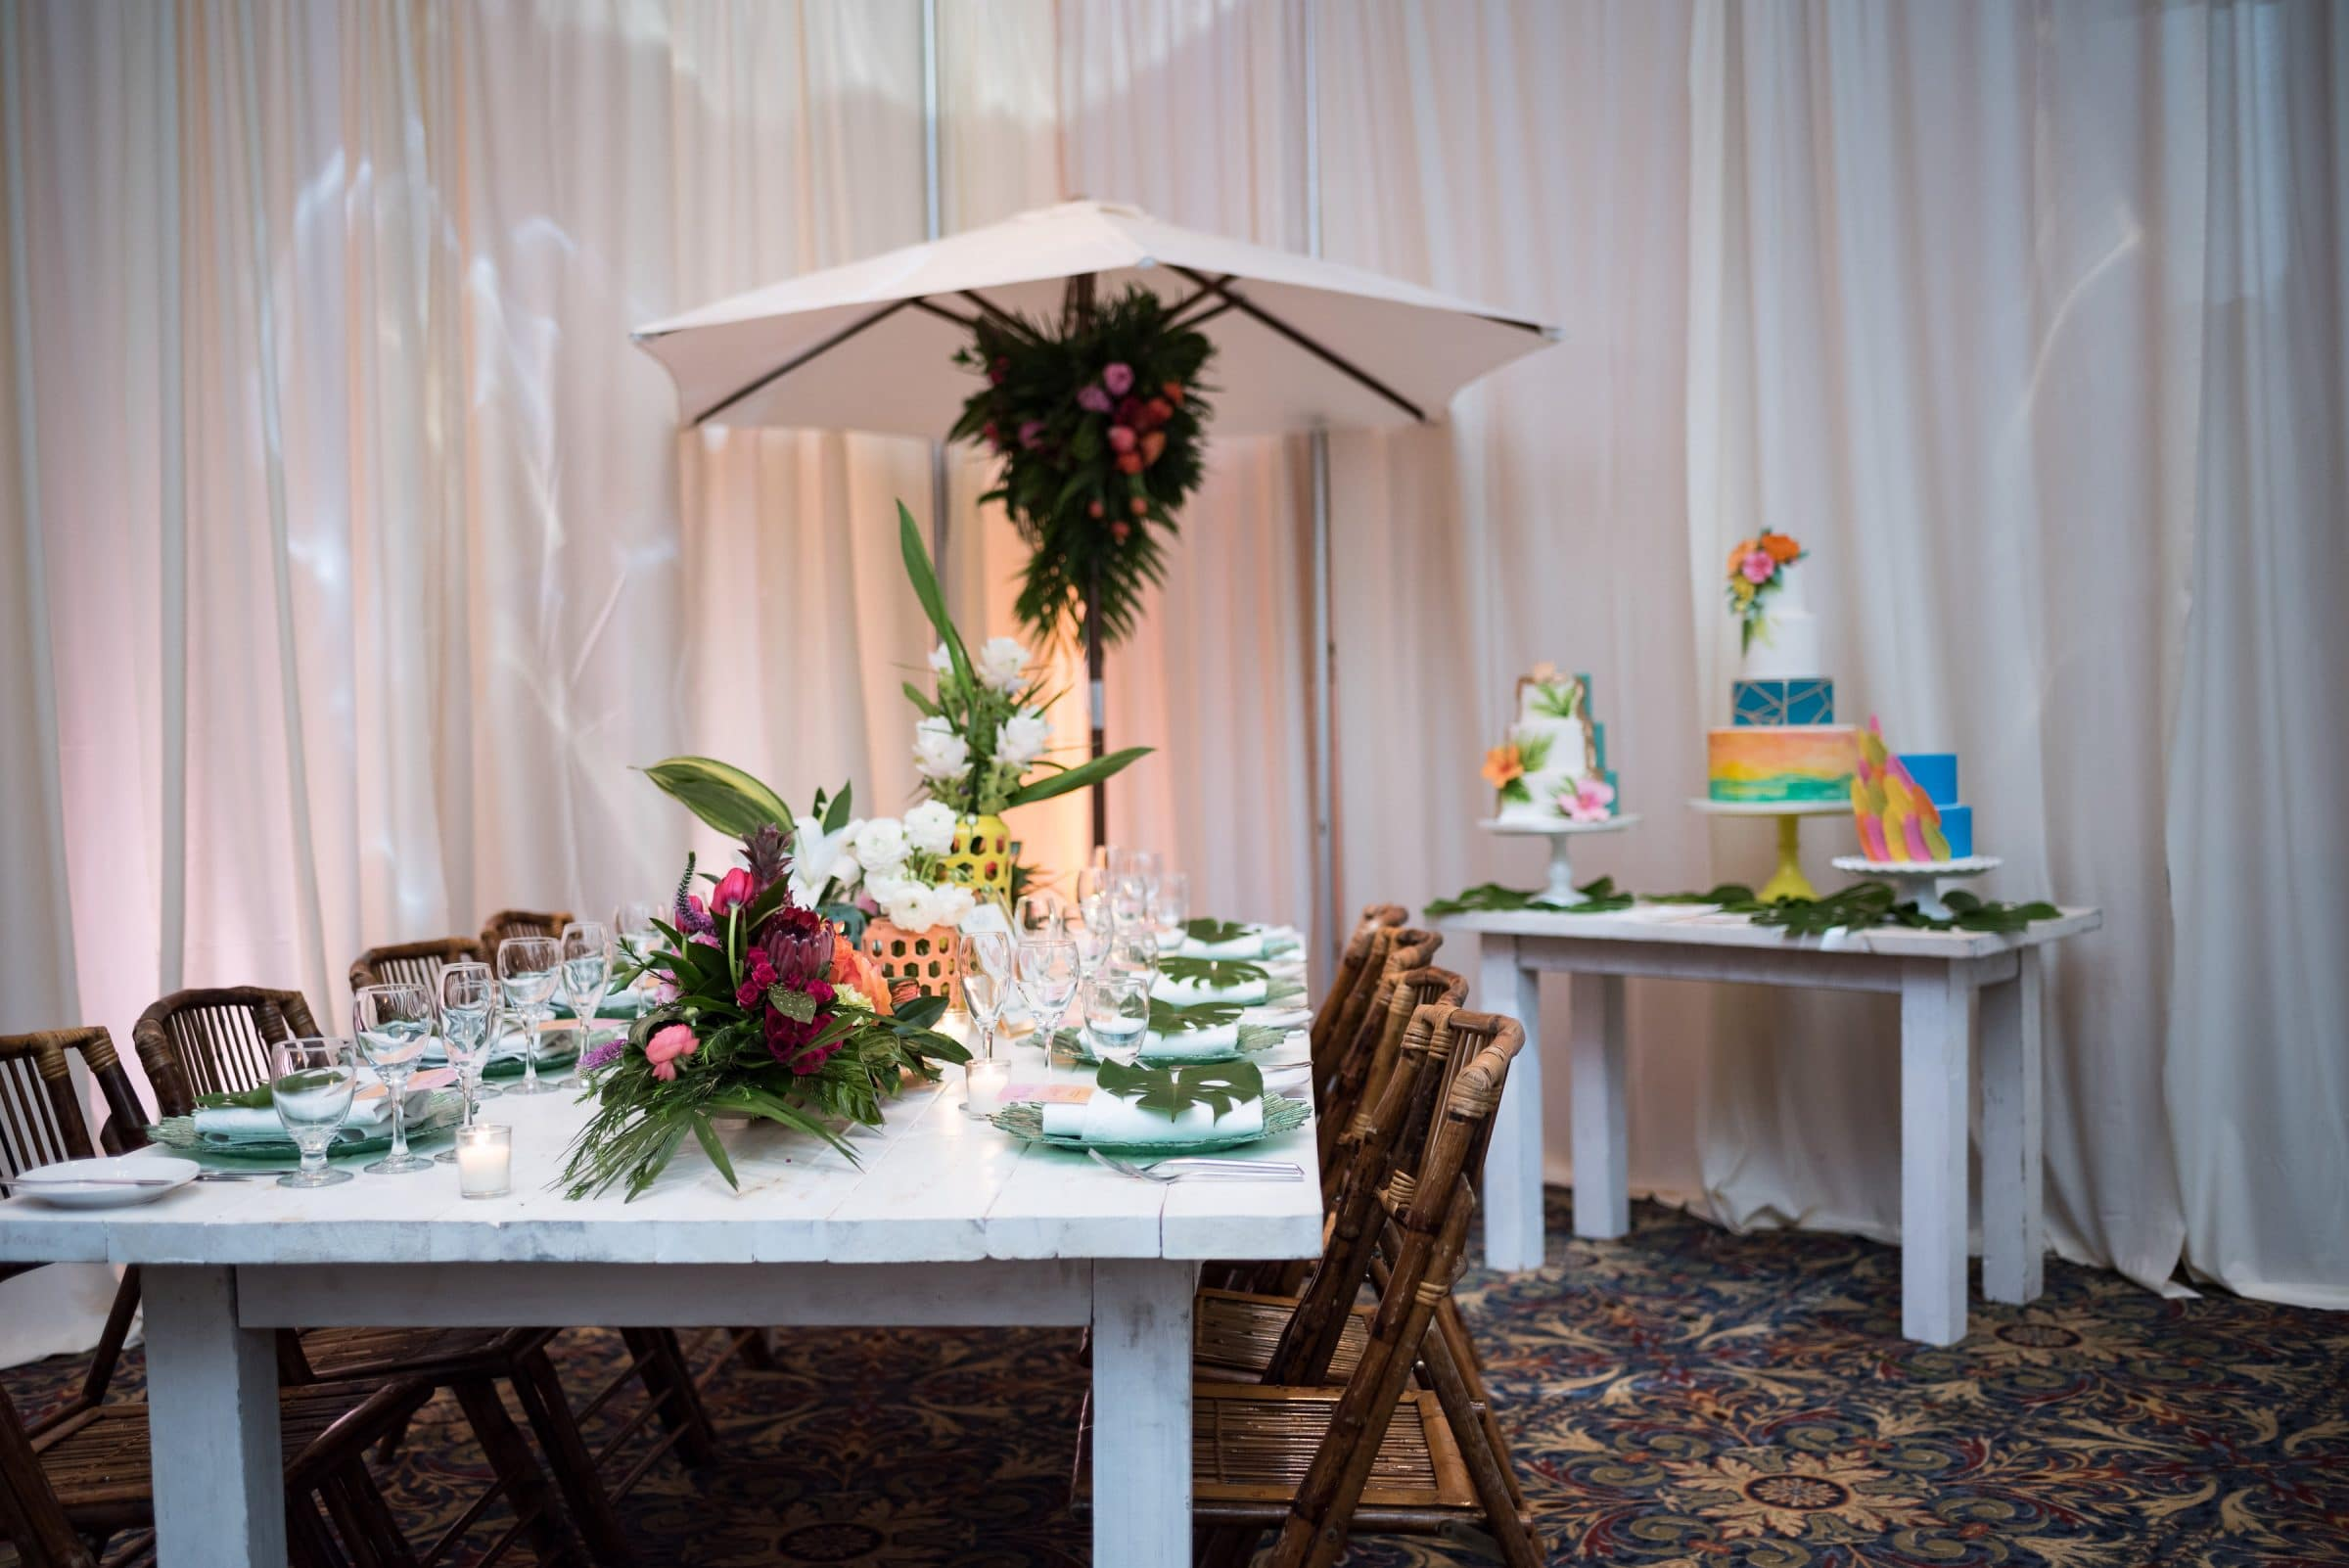 White Table with Bamboo Chairs and Floral